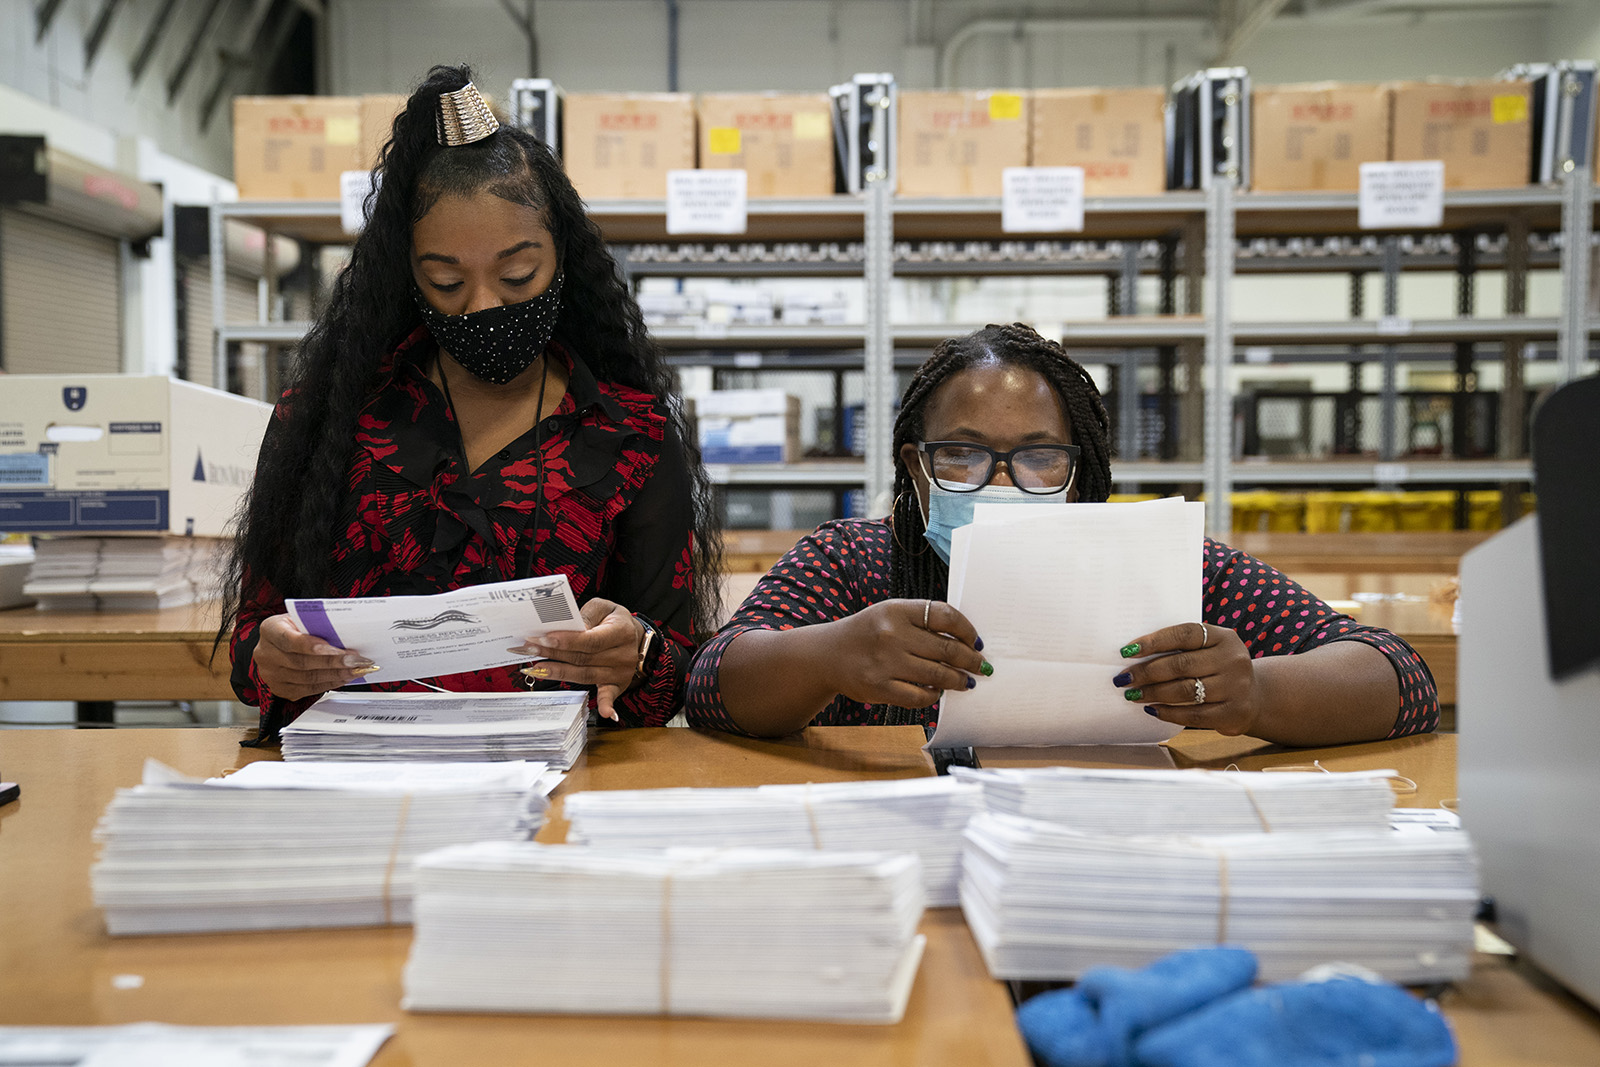 Working in bipartisan pairs, canvassers process mail-in ballots in a warehouse at the Anne Arundel County Board of Elections headquarters on October 7, in Glen Burnie, Maryland.